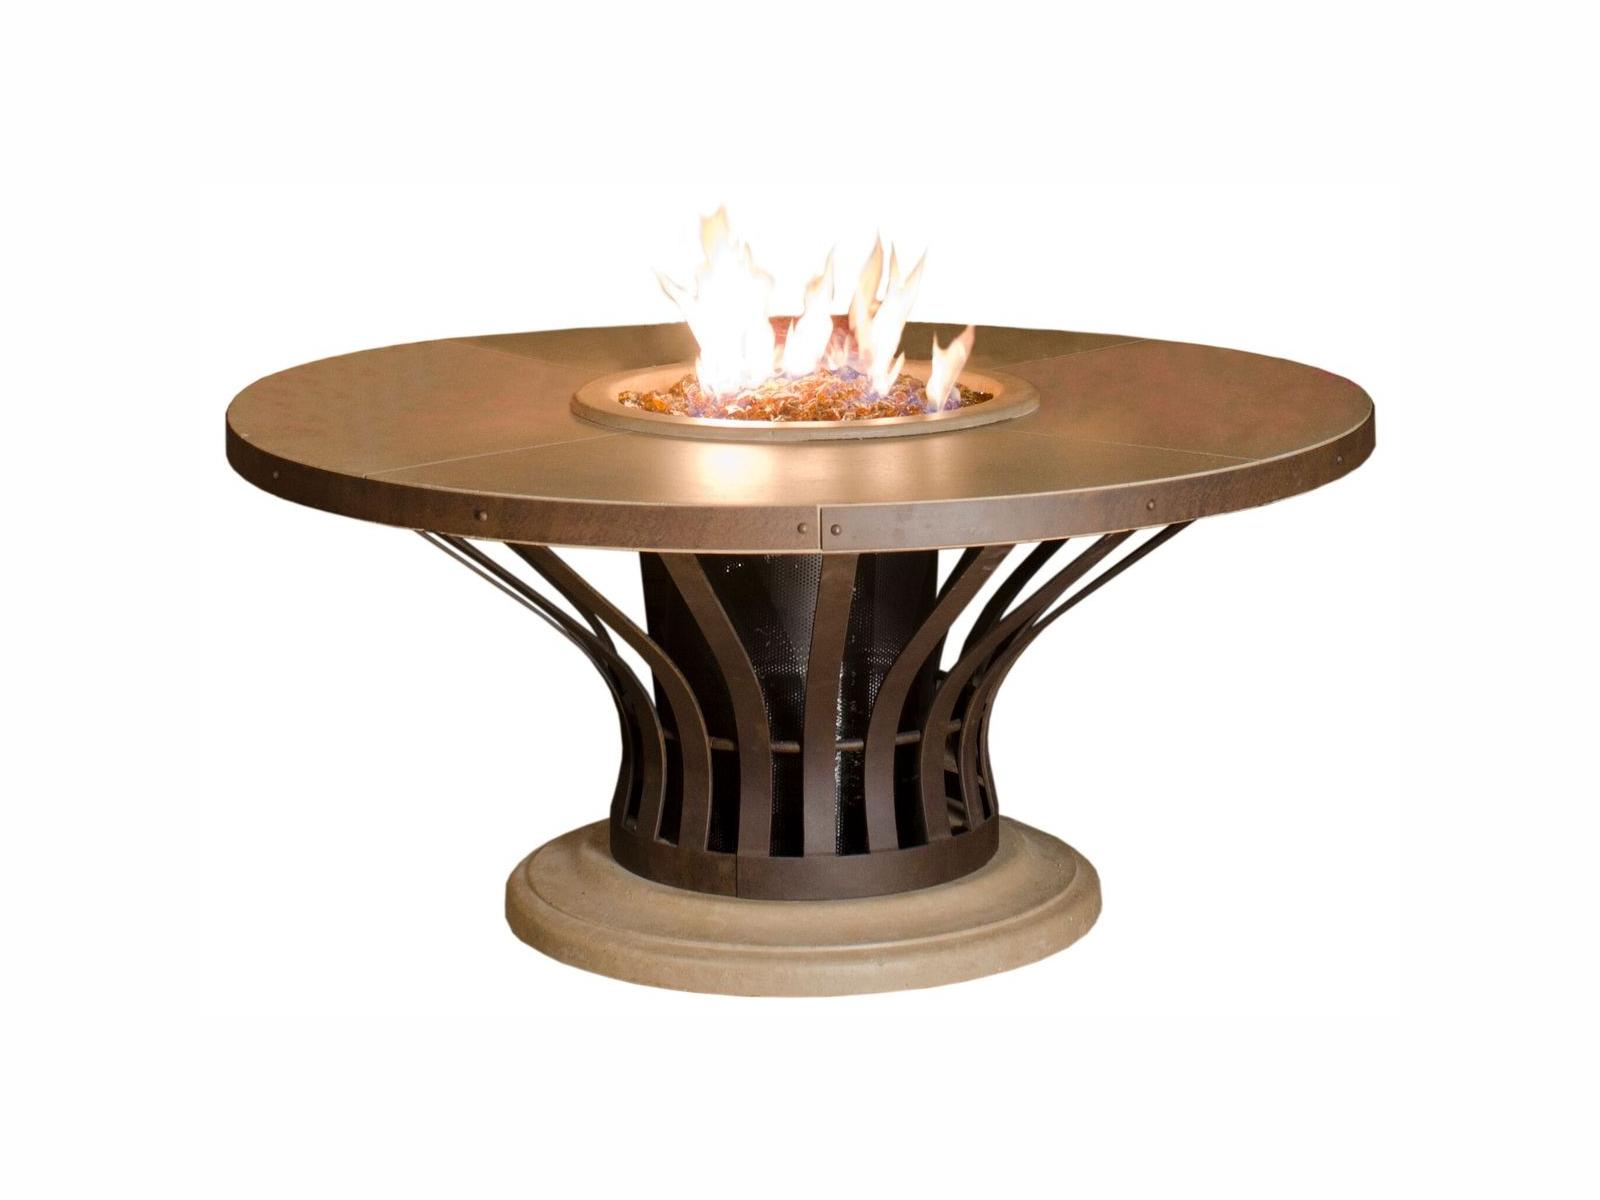 American Fyre Designs Fiesta Dining Fire Table - Fire Pit Oasis